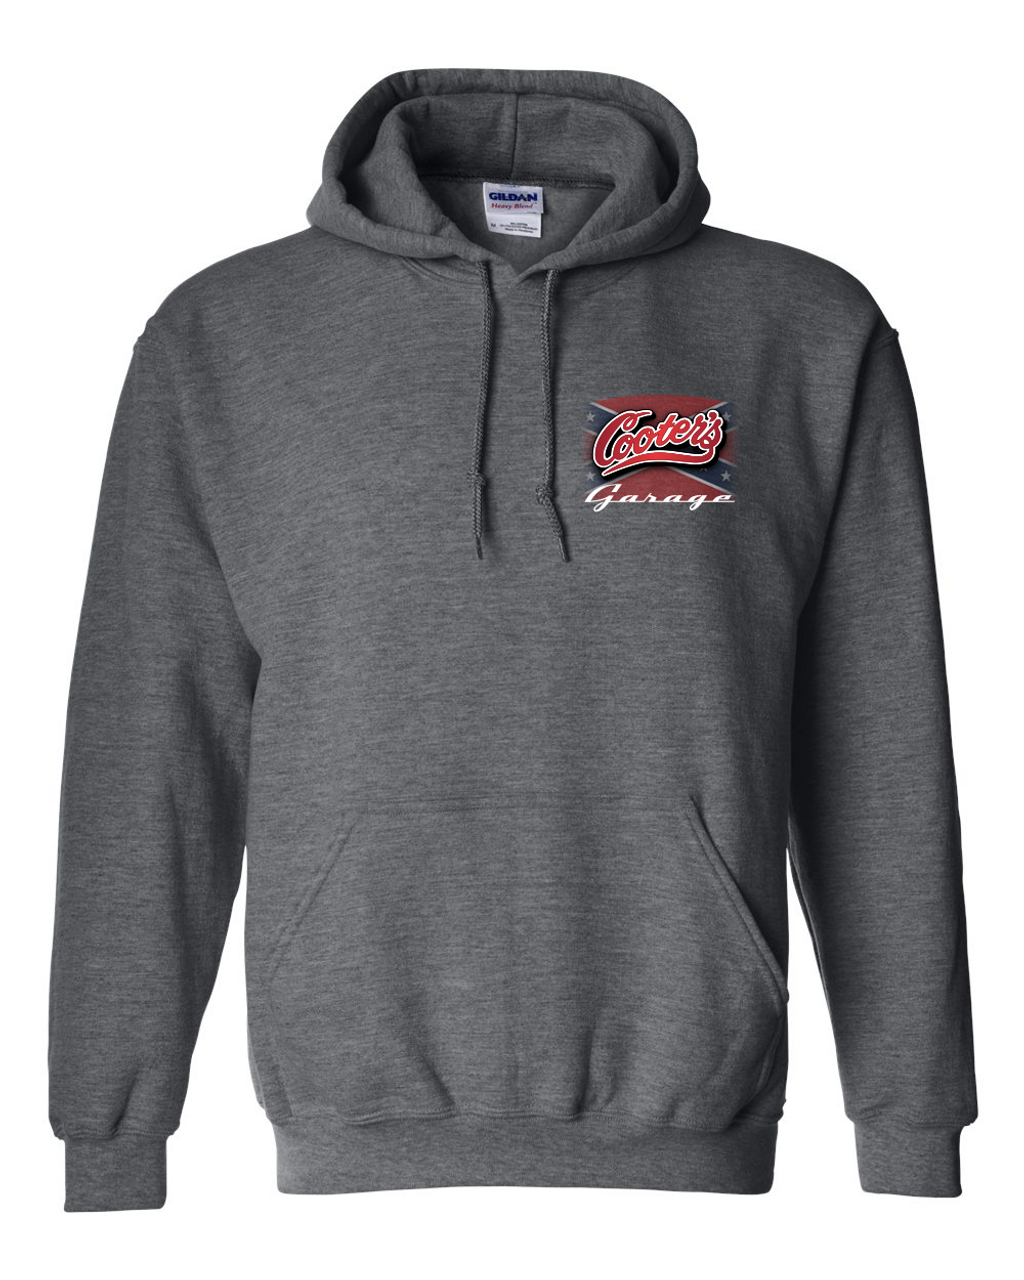 Straightening  the Curves Pullover Hoodie